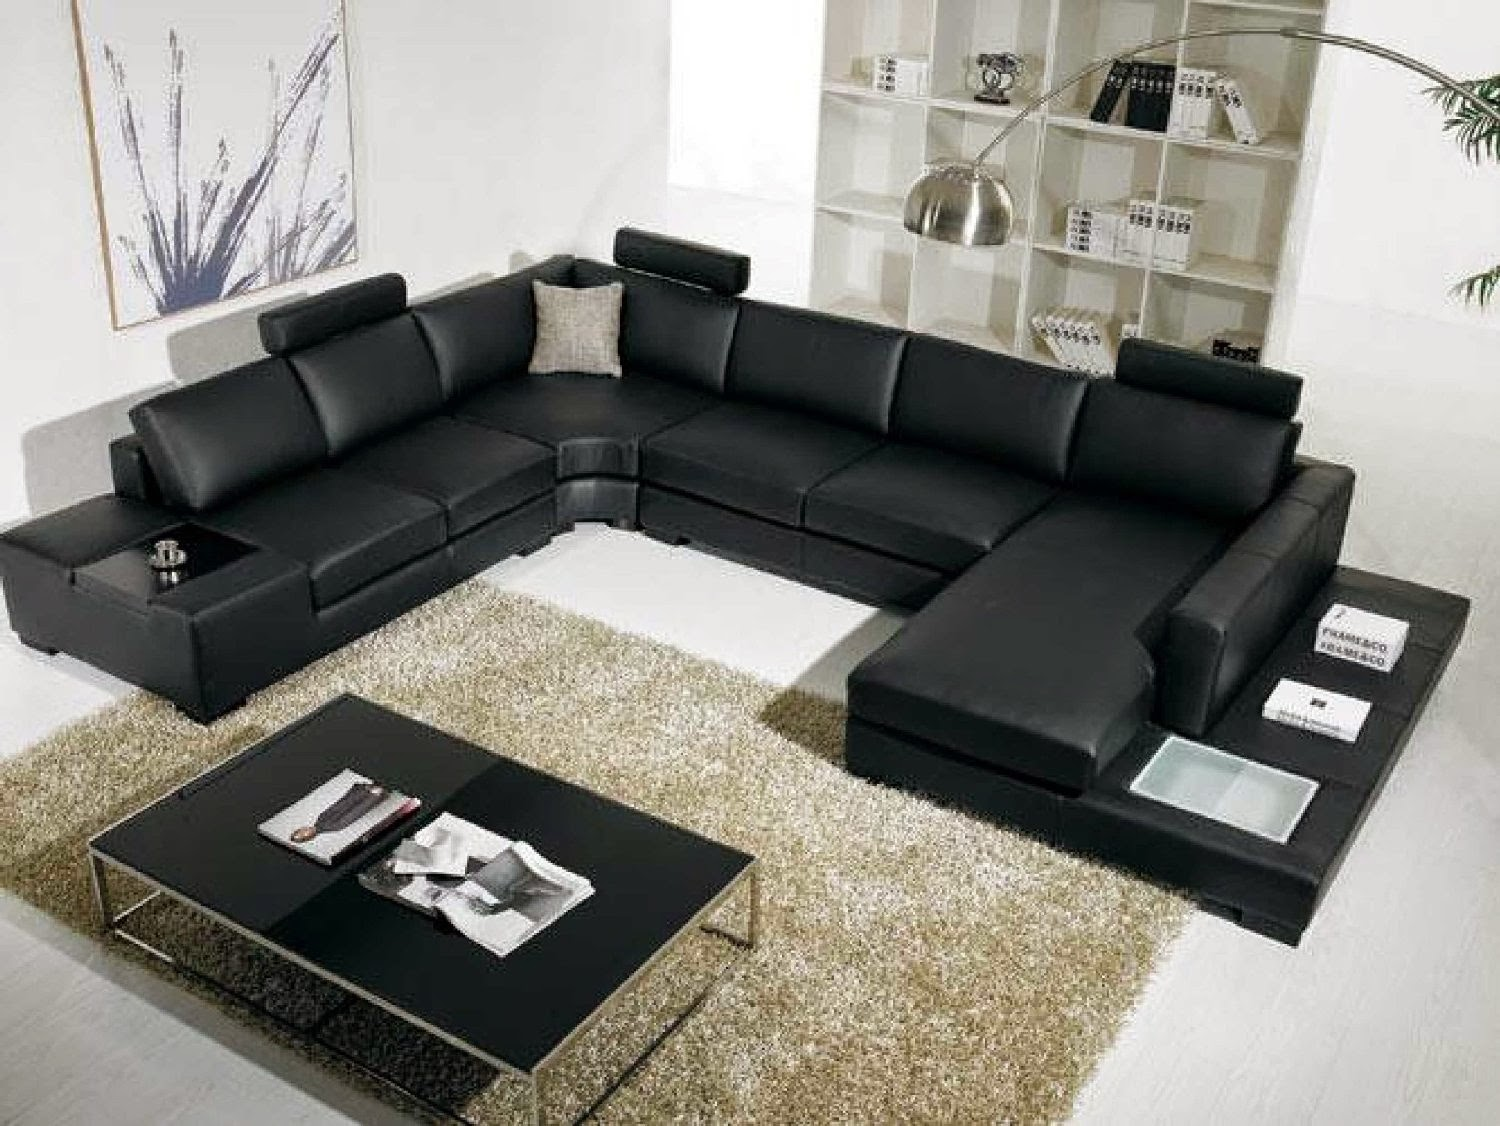 leather couches for sale Reclining Couches Sale: Leather Couch Adjustable Headrest leather couches for sale